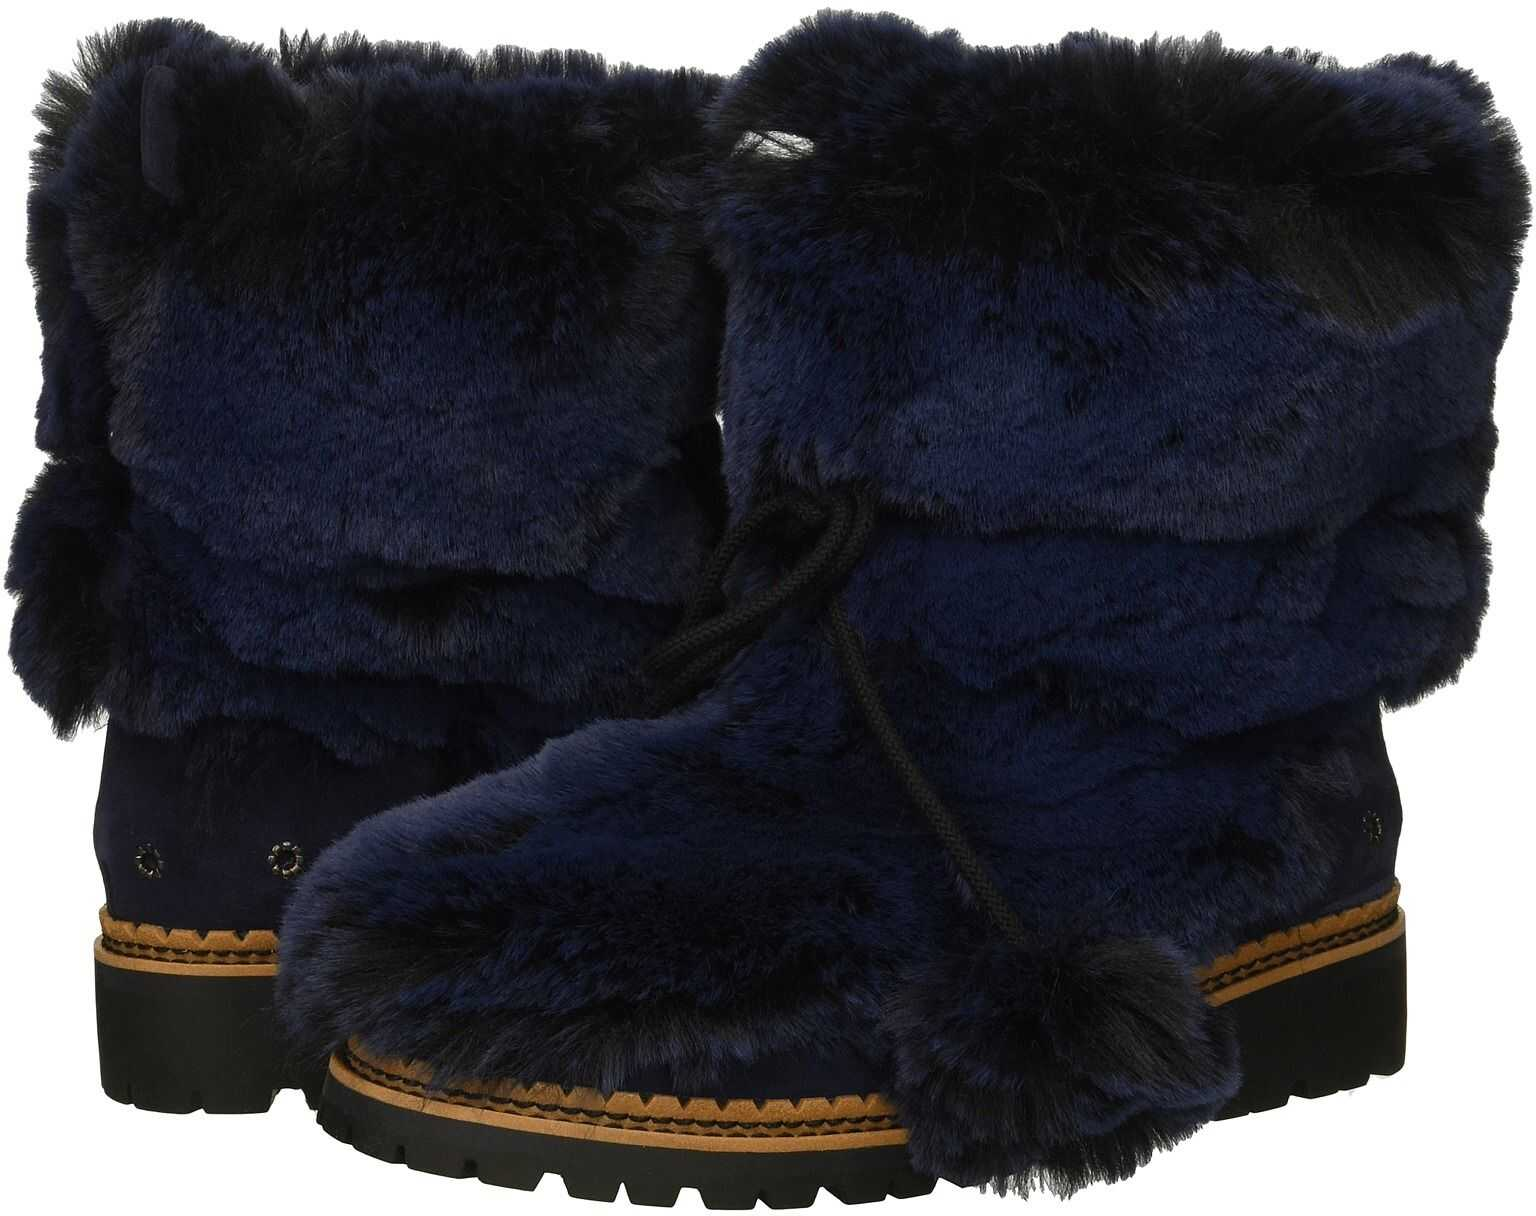 Sam Edelman Blanche Blatic Navy Opulent Fur/Velutto Suede Leather